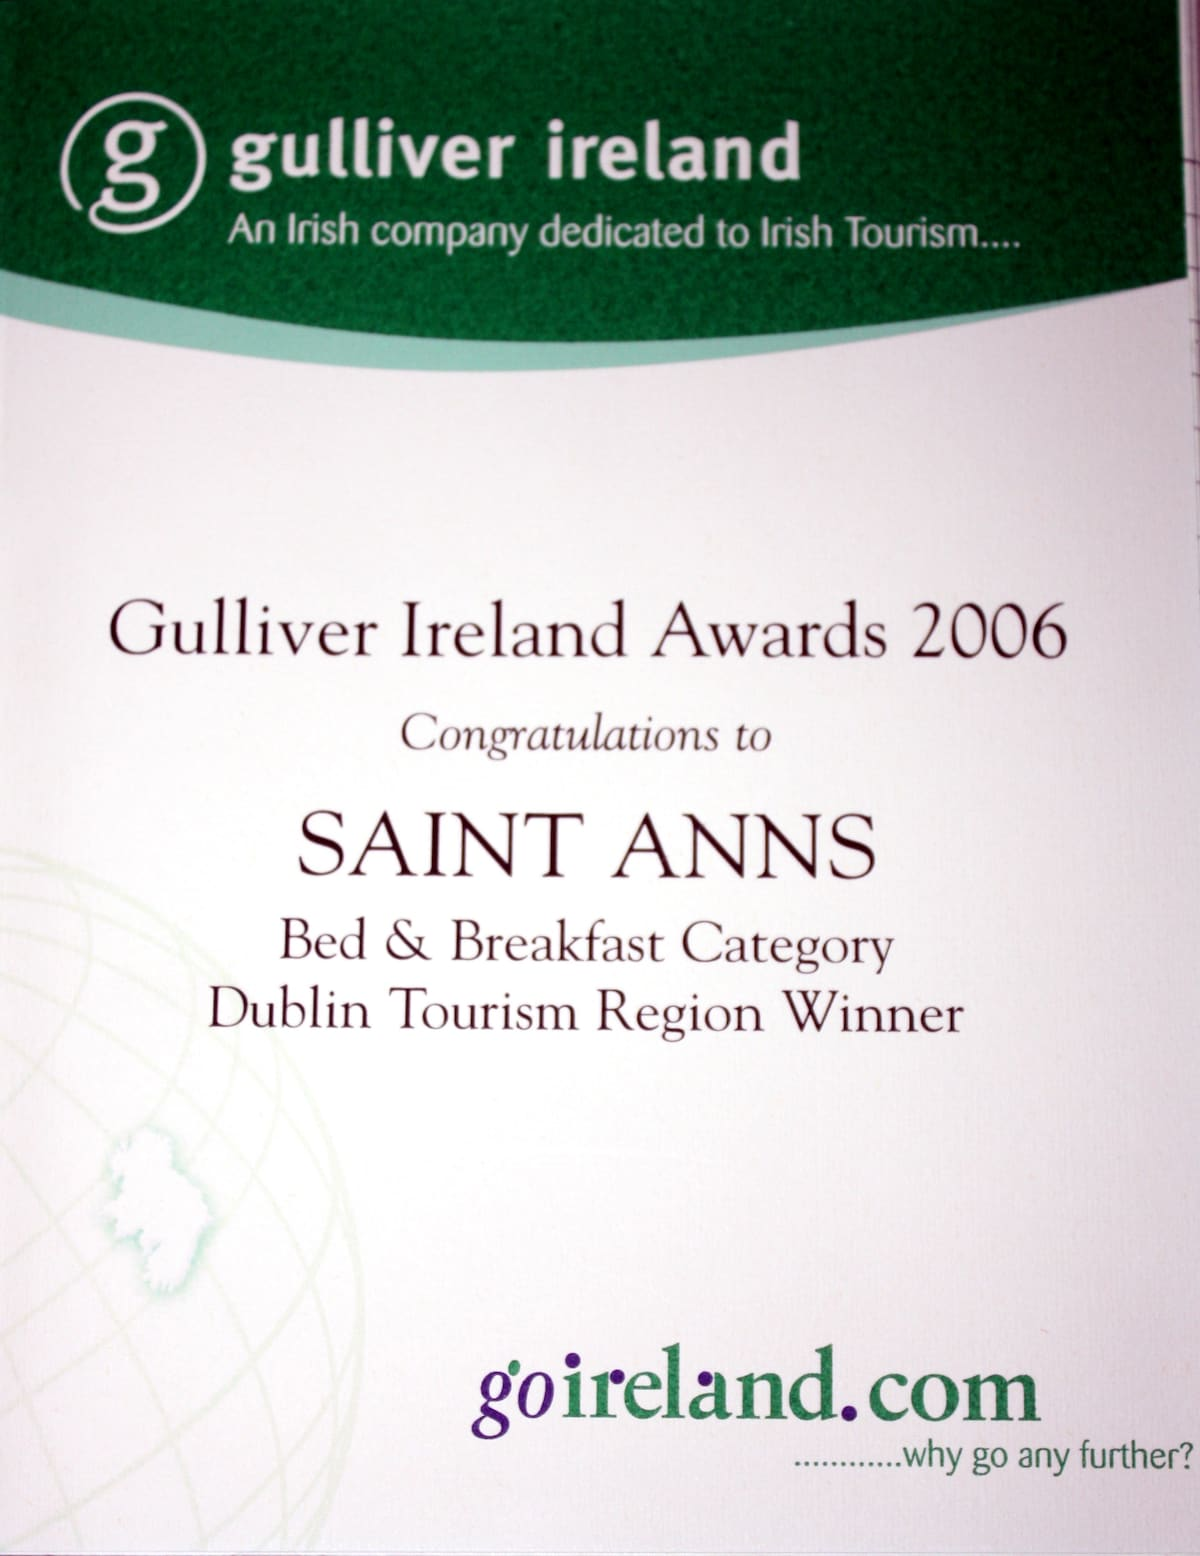 One of our Awards...